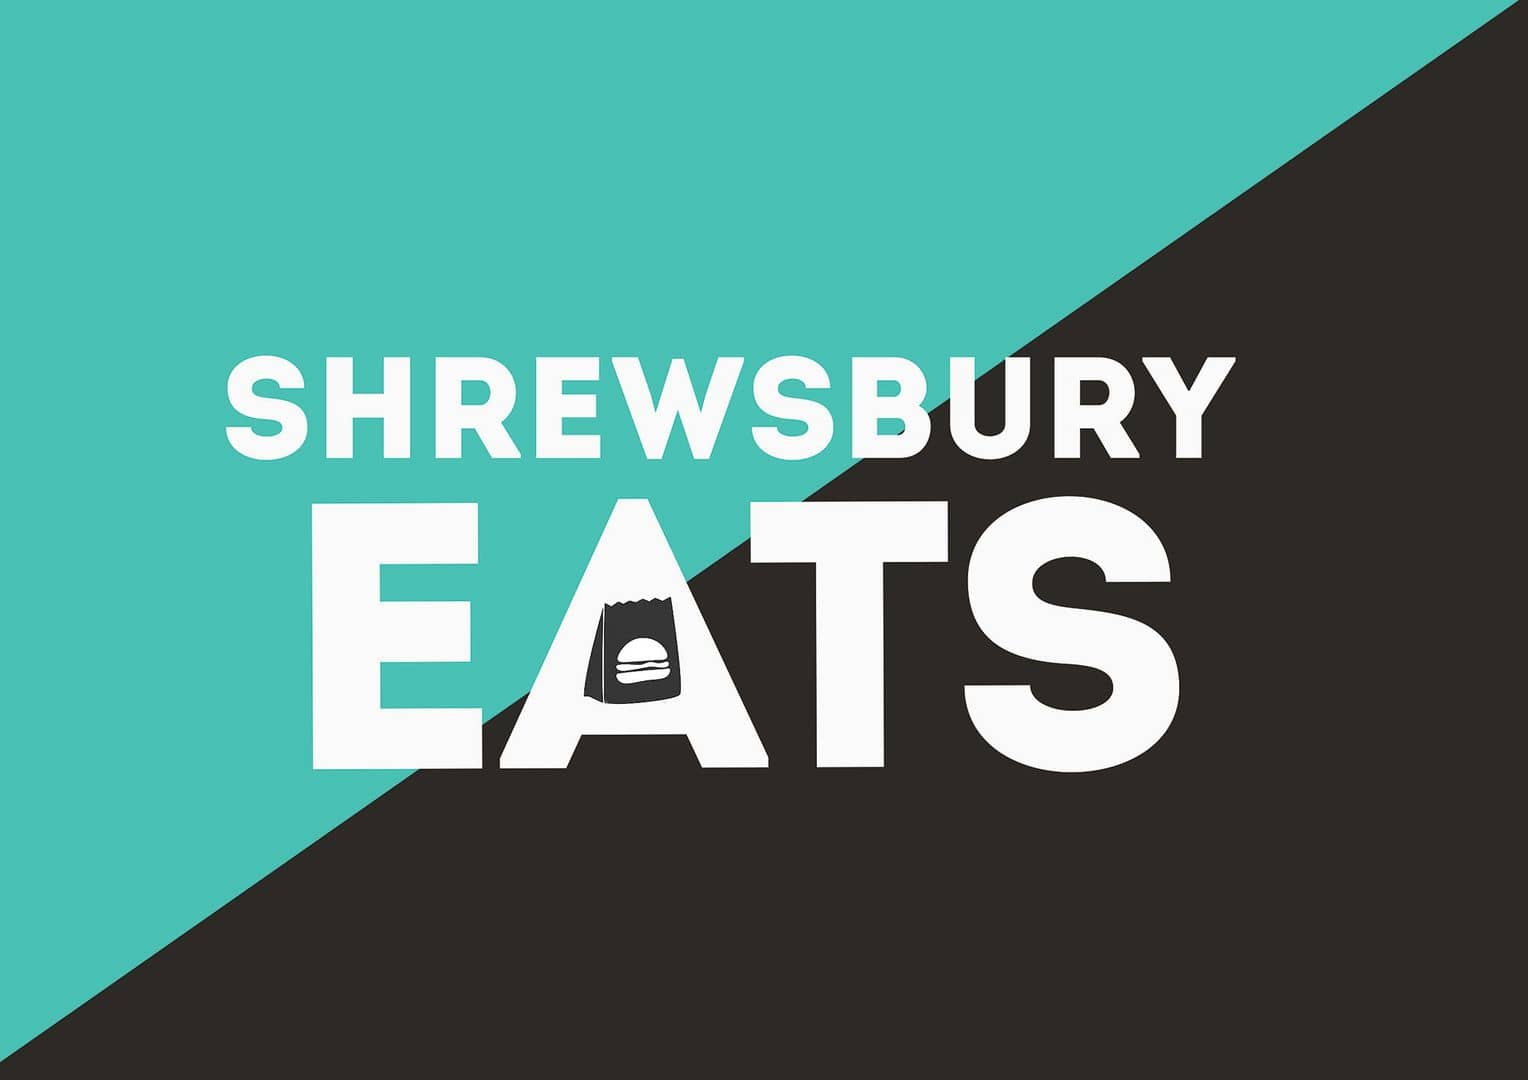 Shrewsbury Eats logo